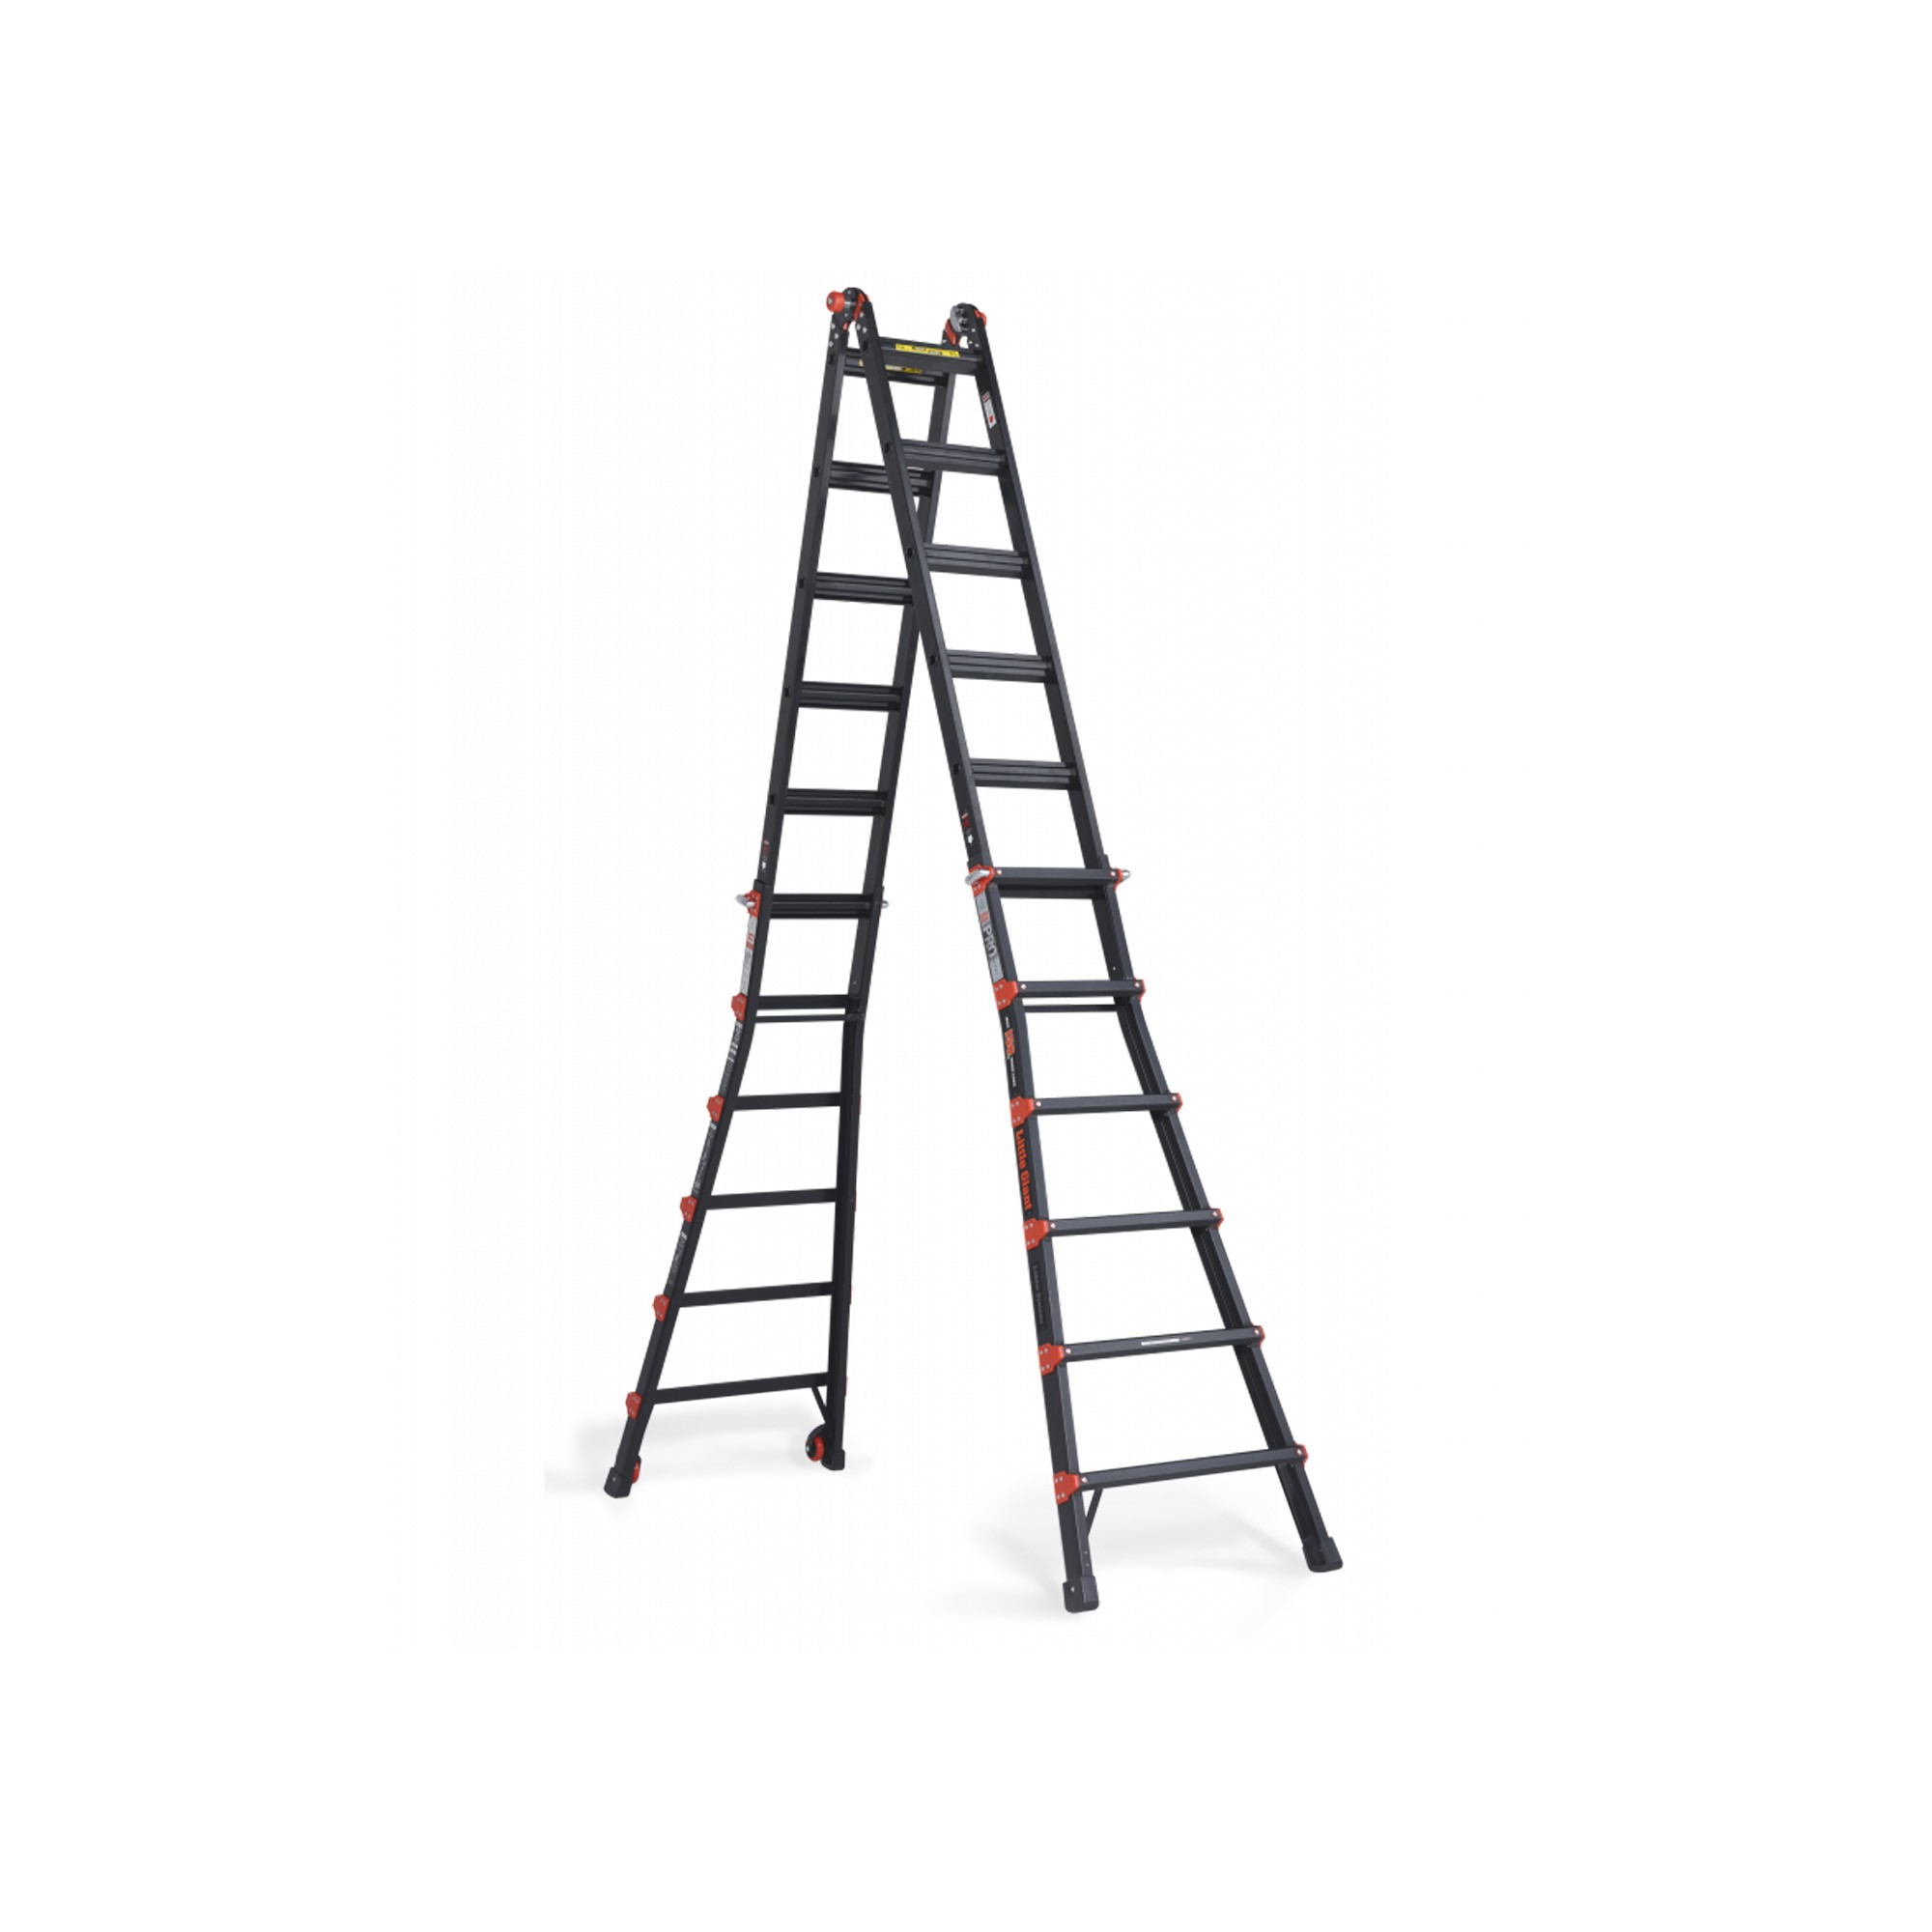 Altrex Black Folding ladder available to rent / verhuur / location at 50.8 Studio • Belgïe, Belgique, Belgium, Grip, Huur, Location, Louer, Manfrotto, Only in, Photo, Rent, Rental, Stand, Studio, Verhuur, Video